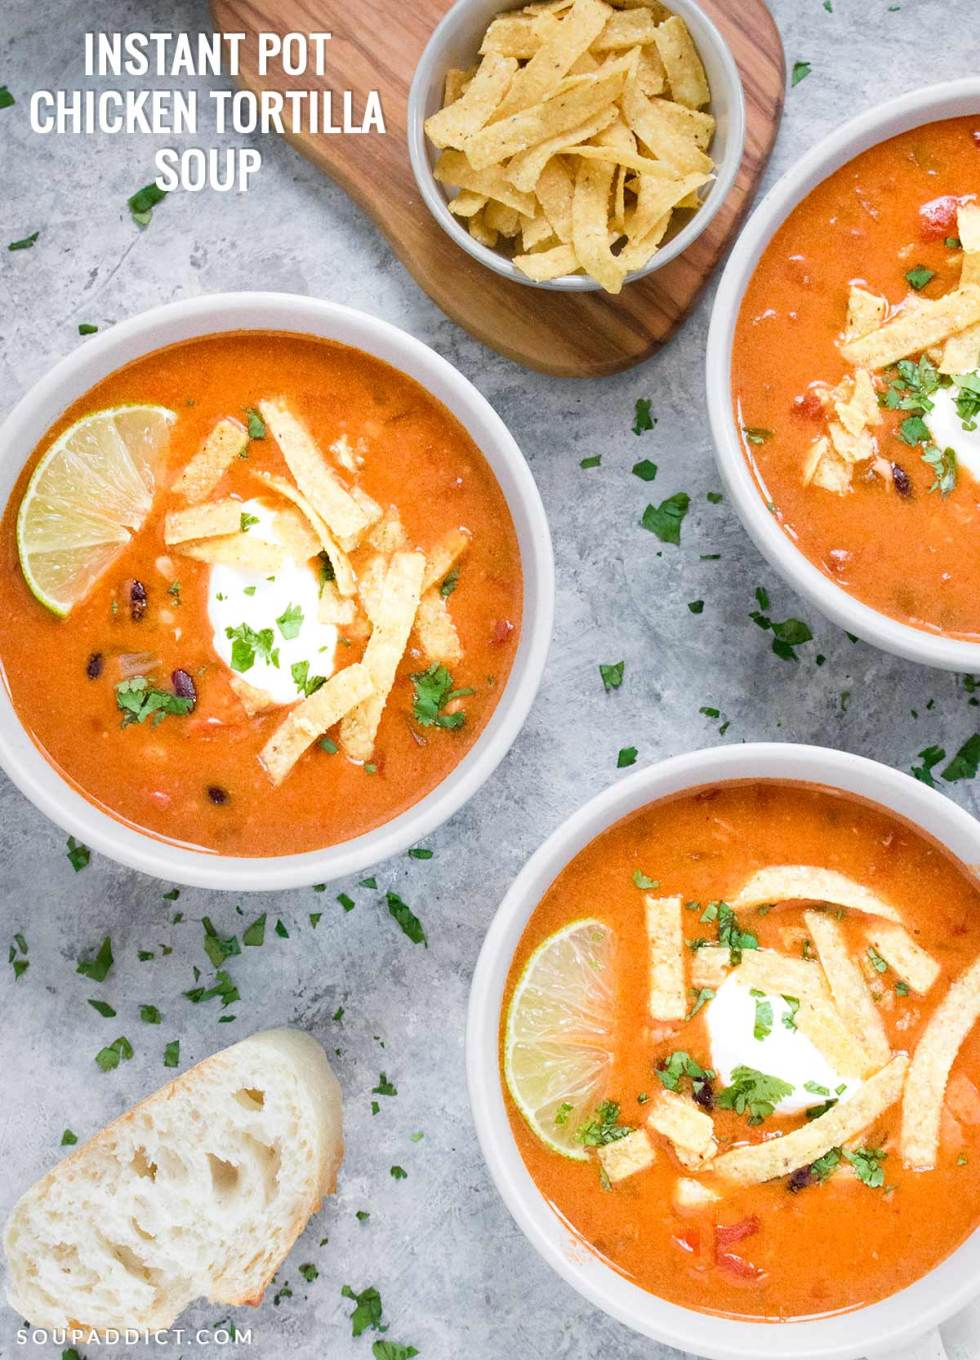 Instant Pot Chicken Tortilla Soup - Recipe at SoupAddict.com